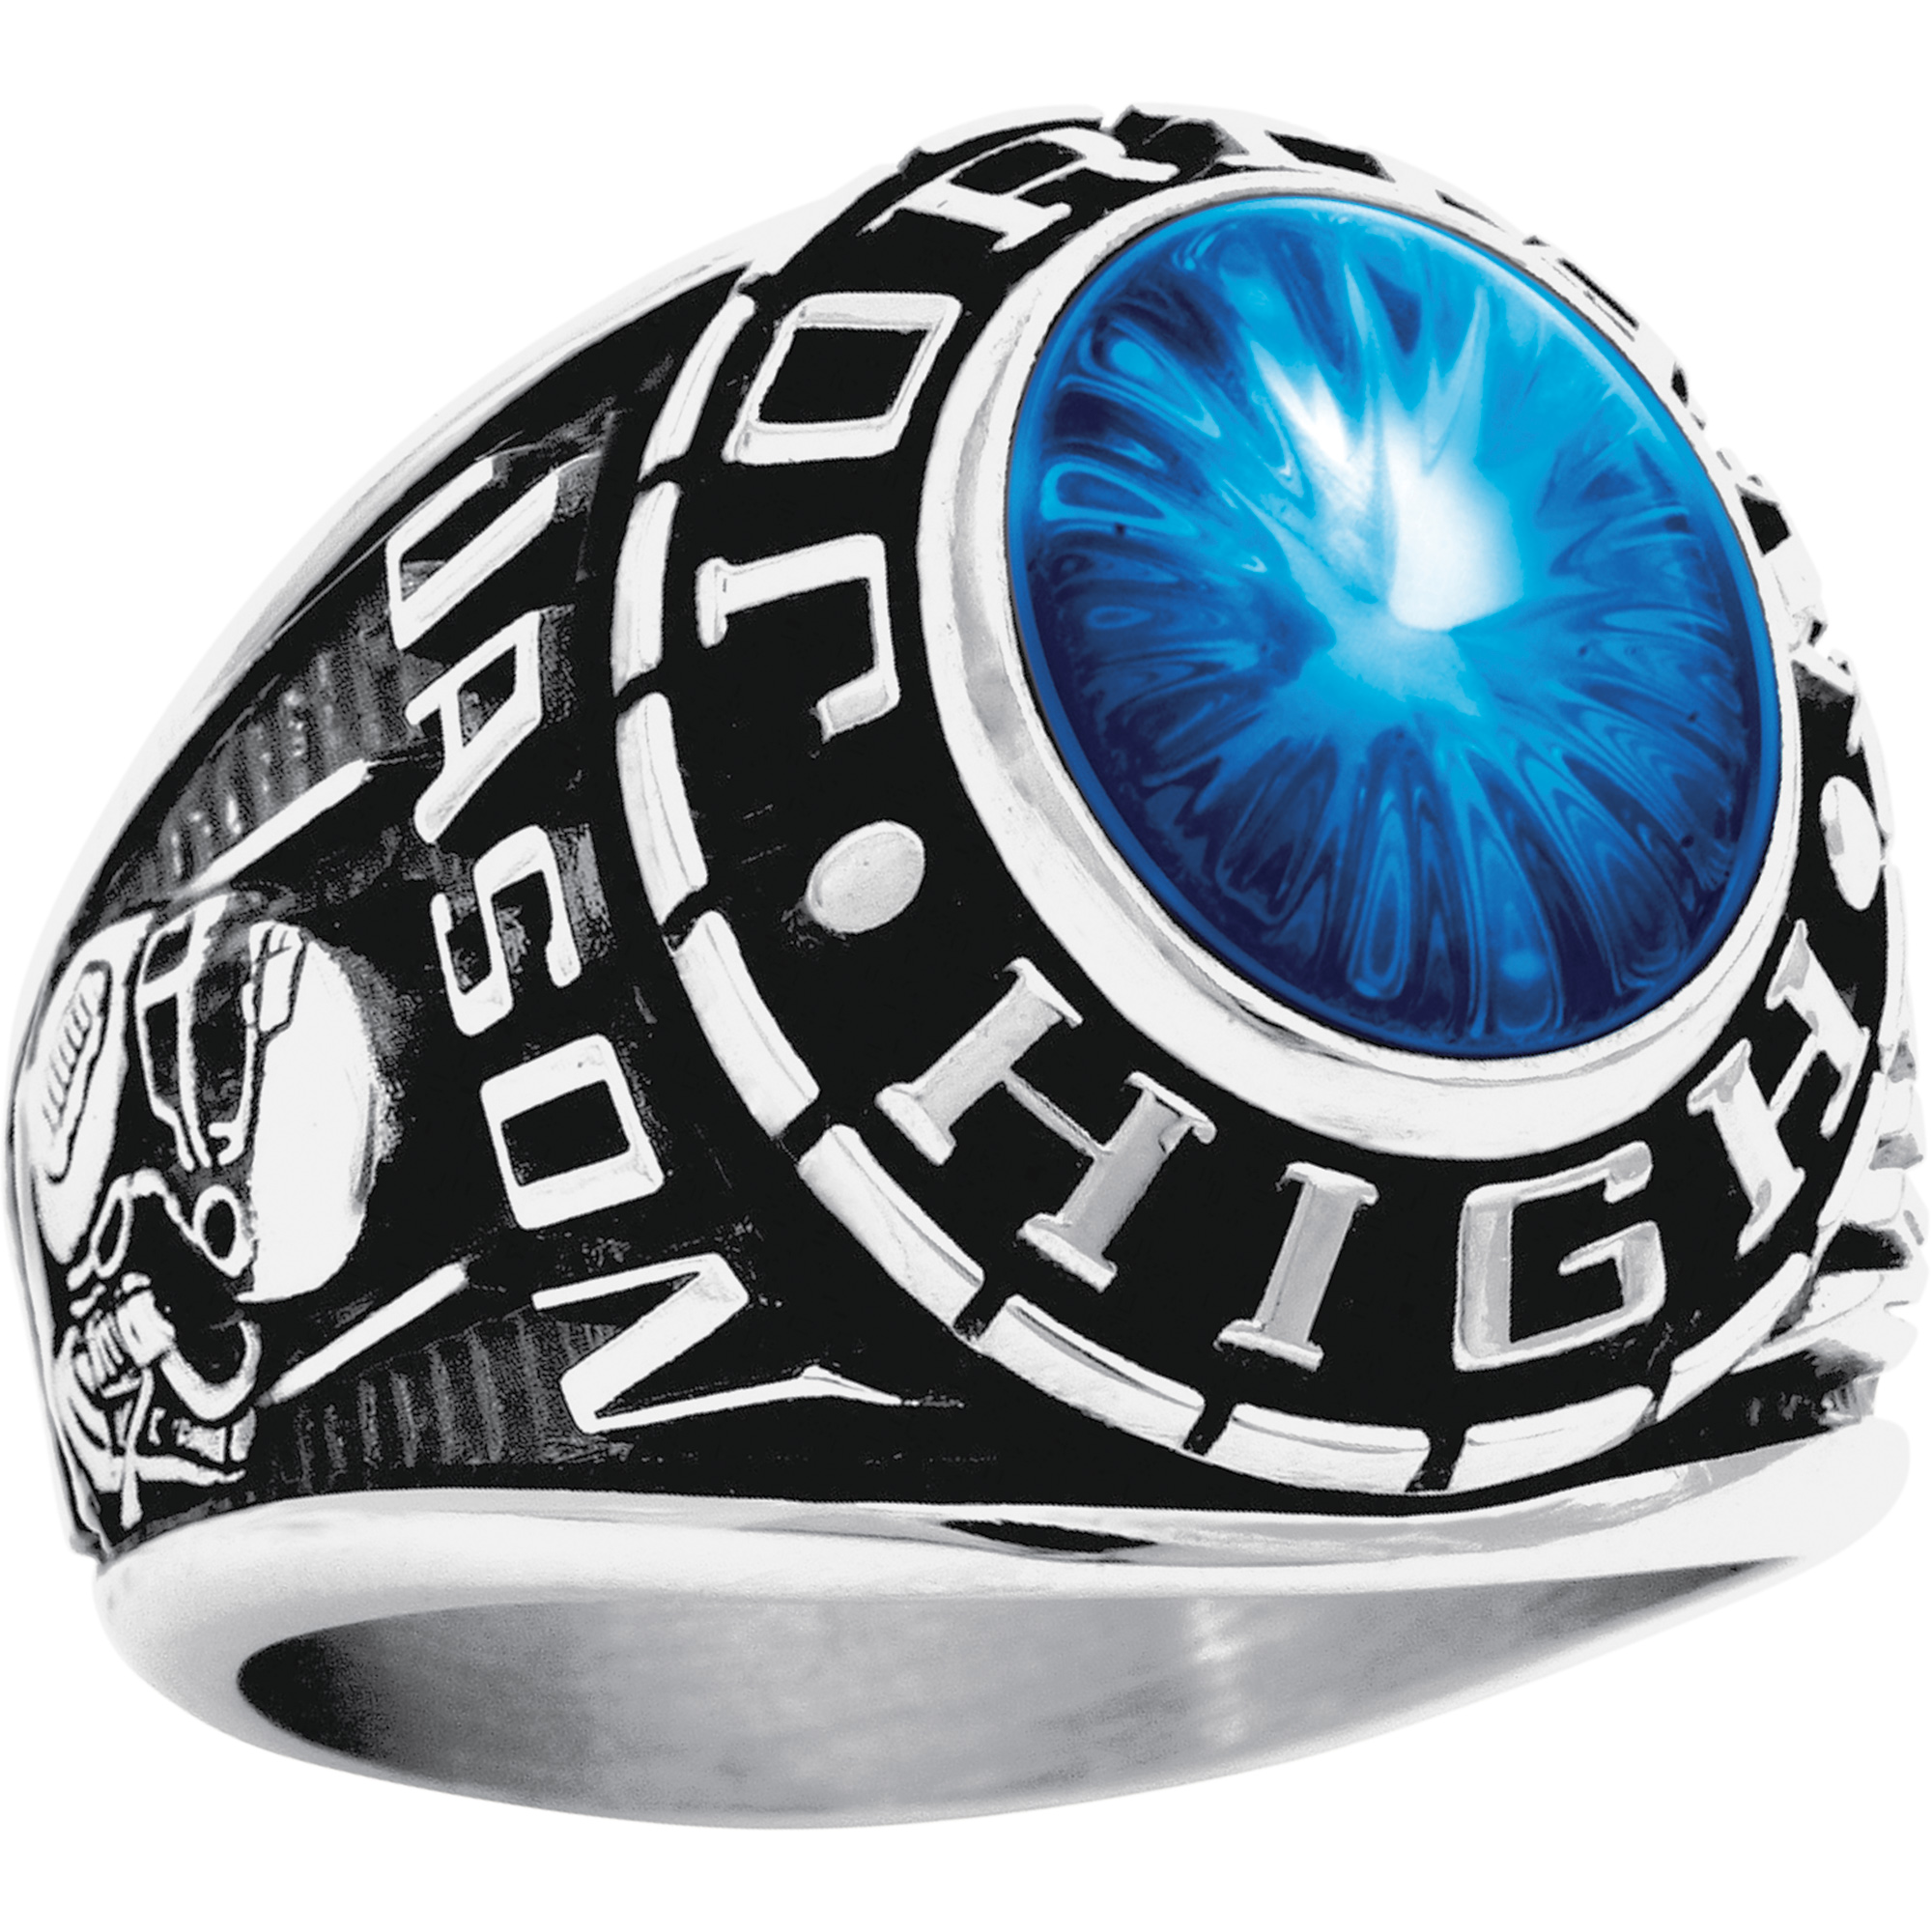 Keepsake Personalized Men's Oval Class Ring available in Valadium Metals, Silver Plus and Yellow and White Gold